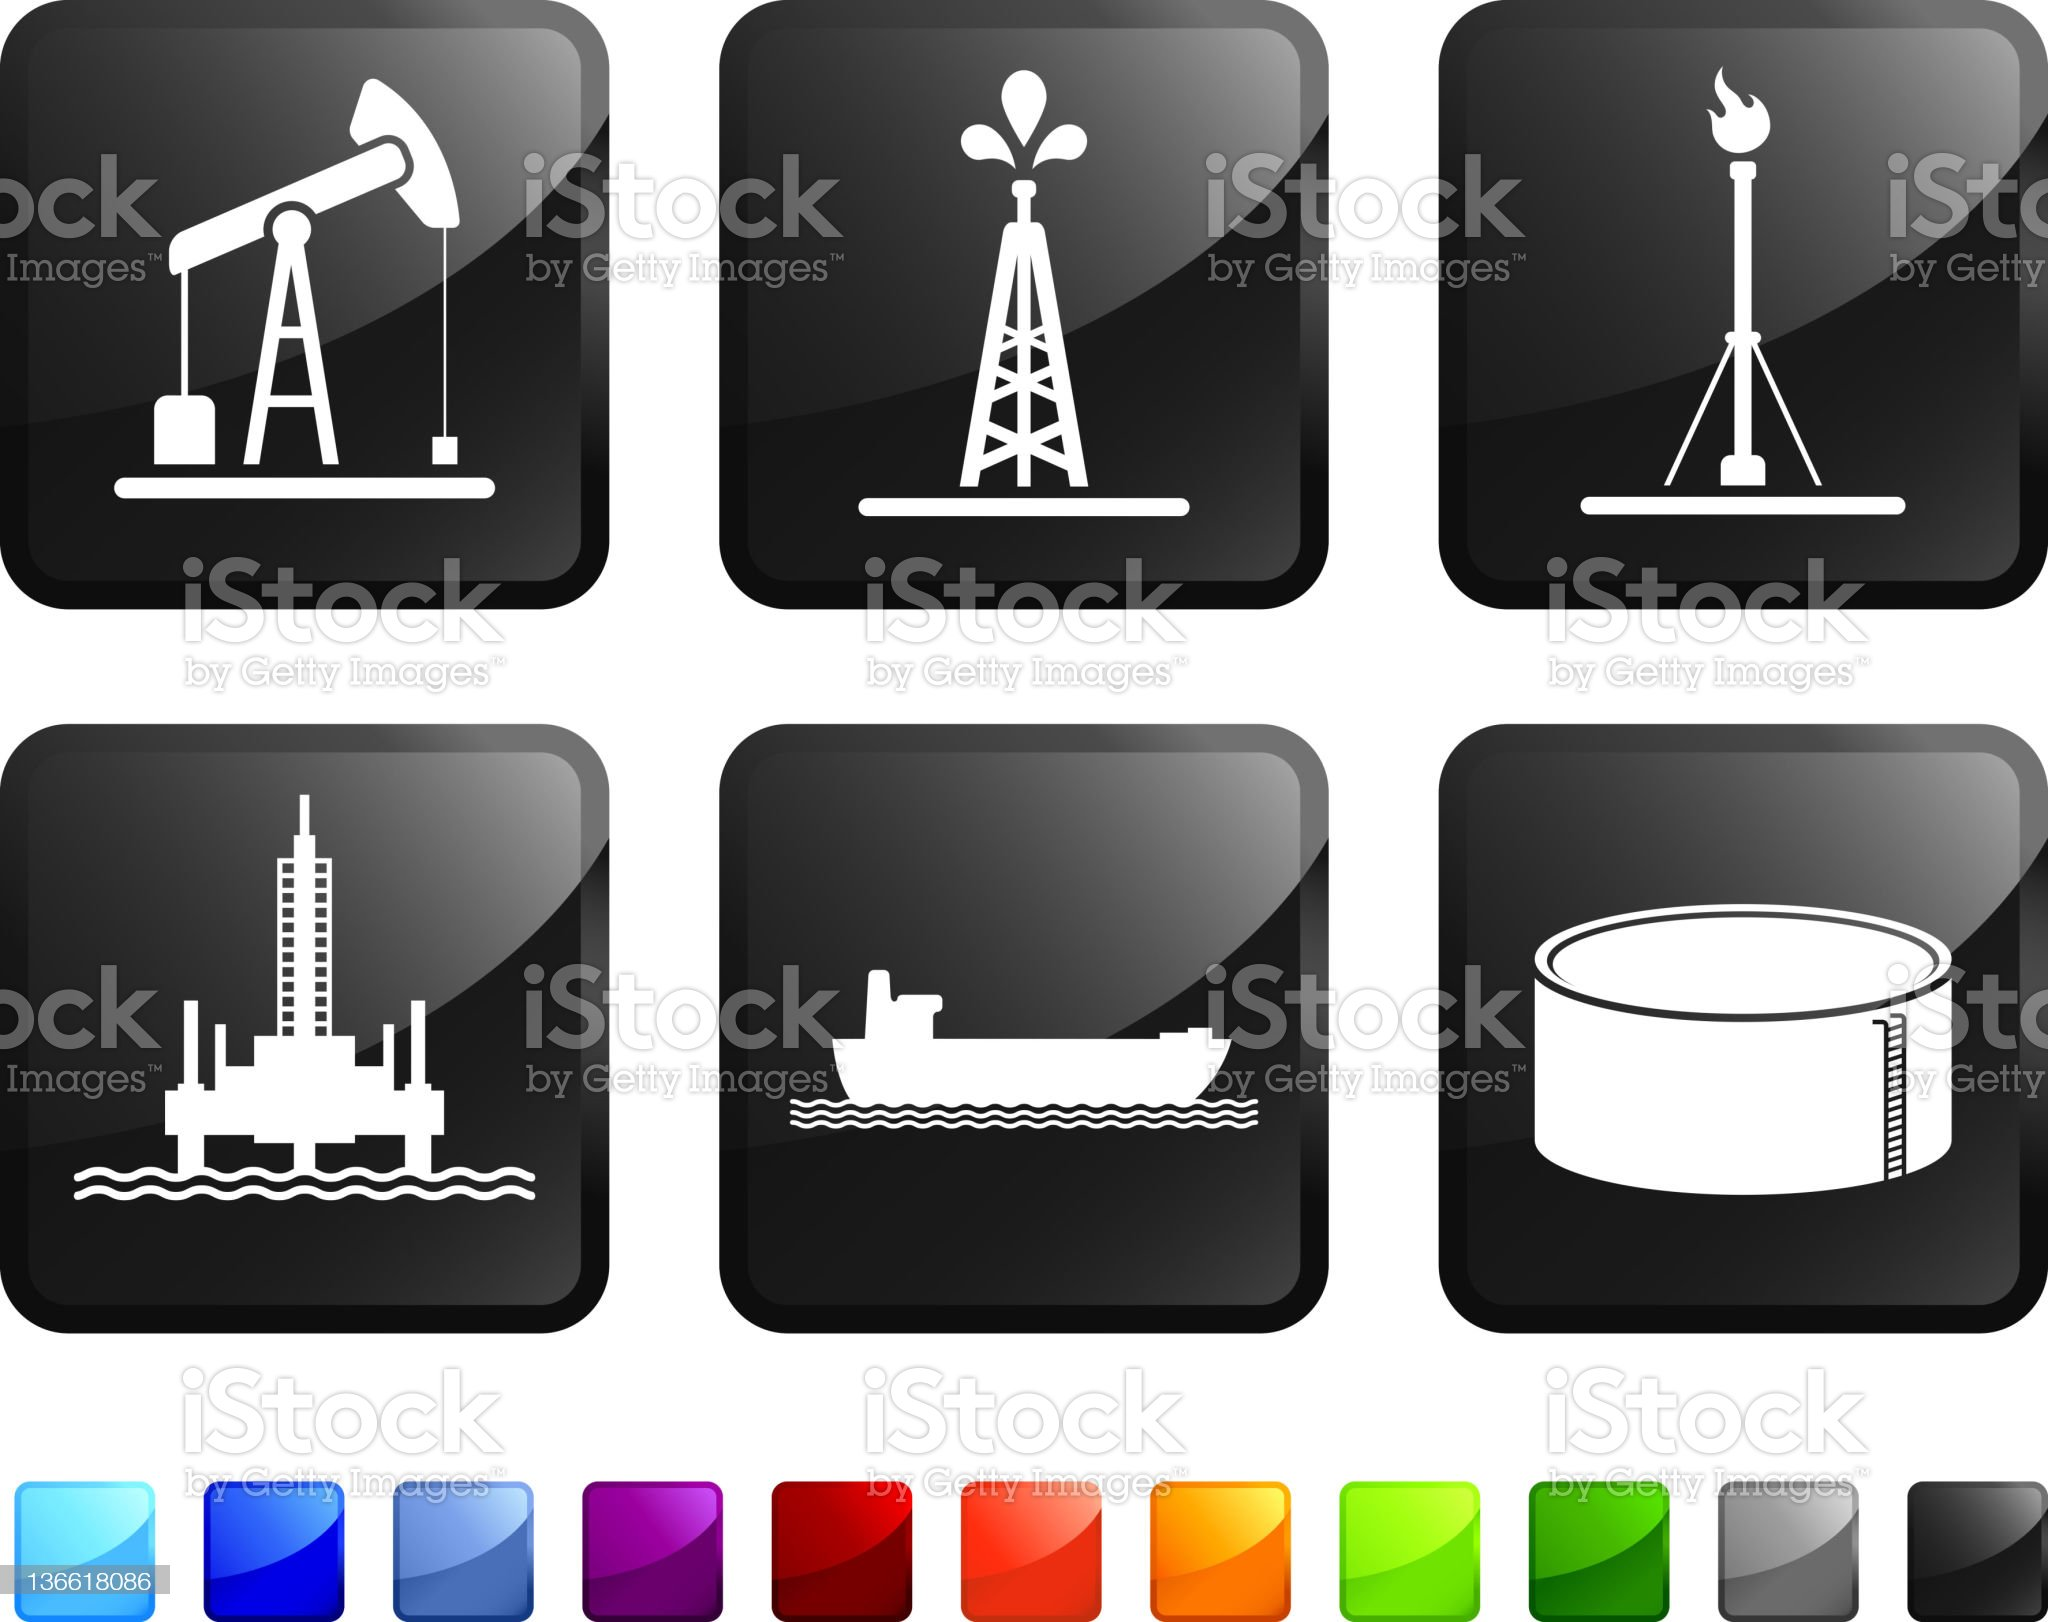 oil industry resources royalty free vector icon set stickers royalty-free stock vector art